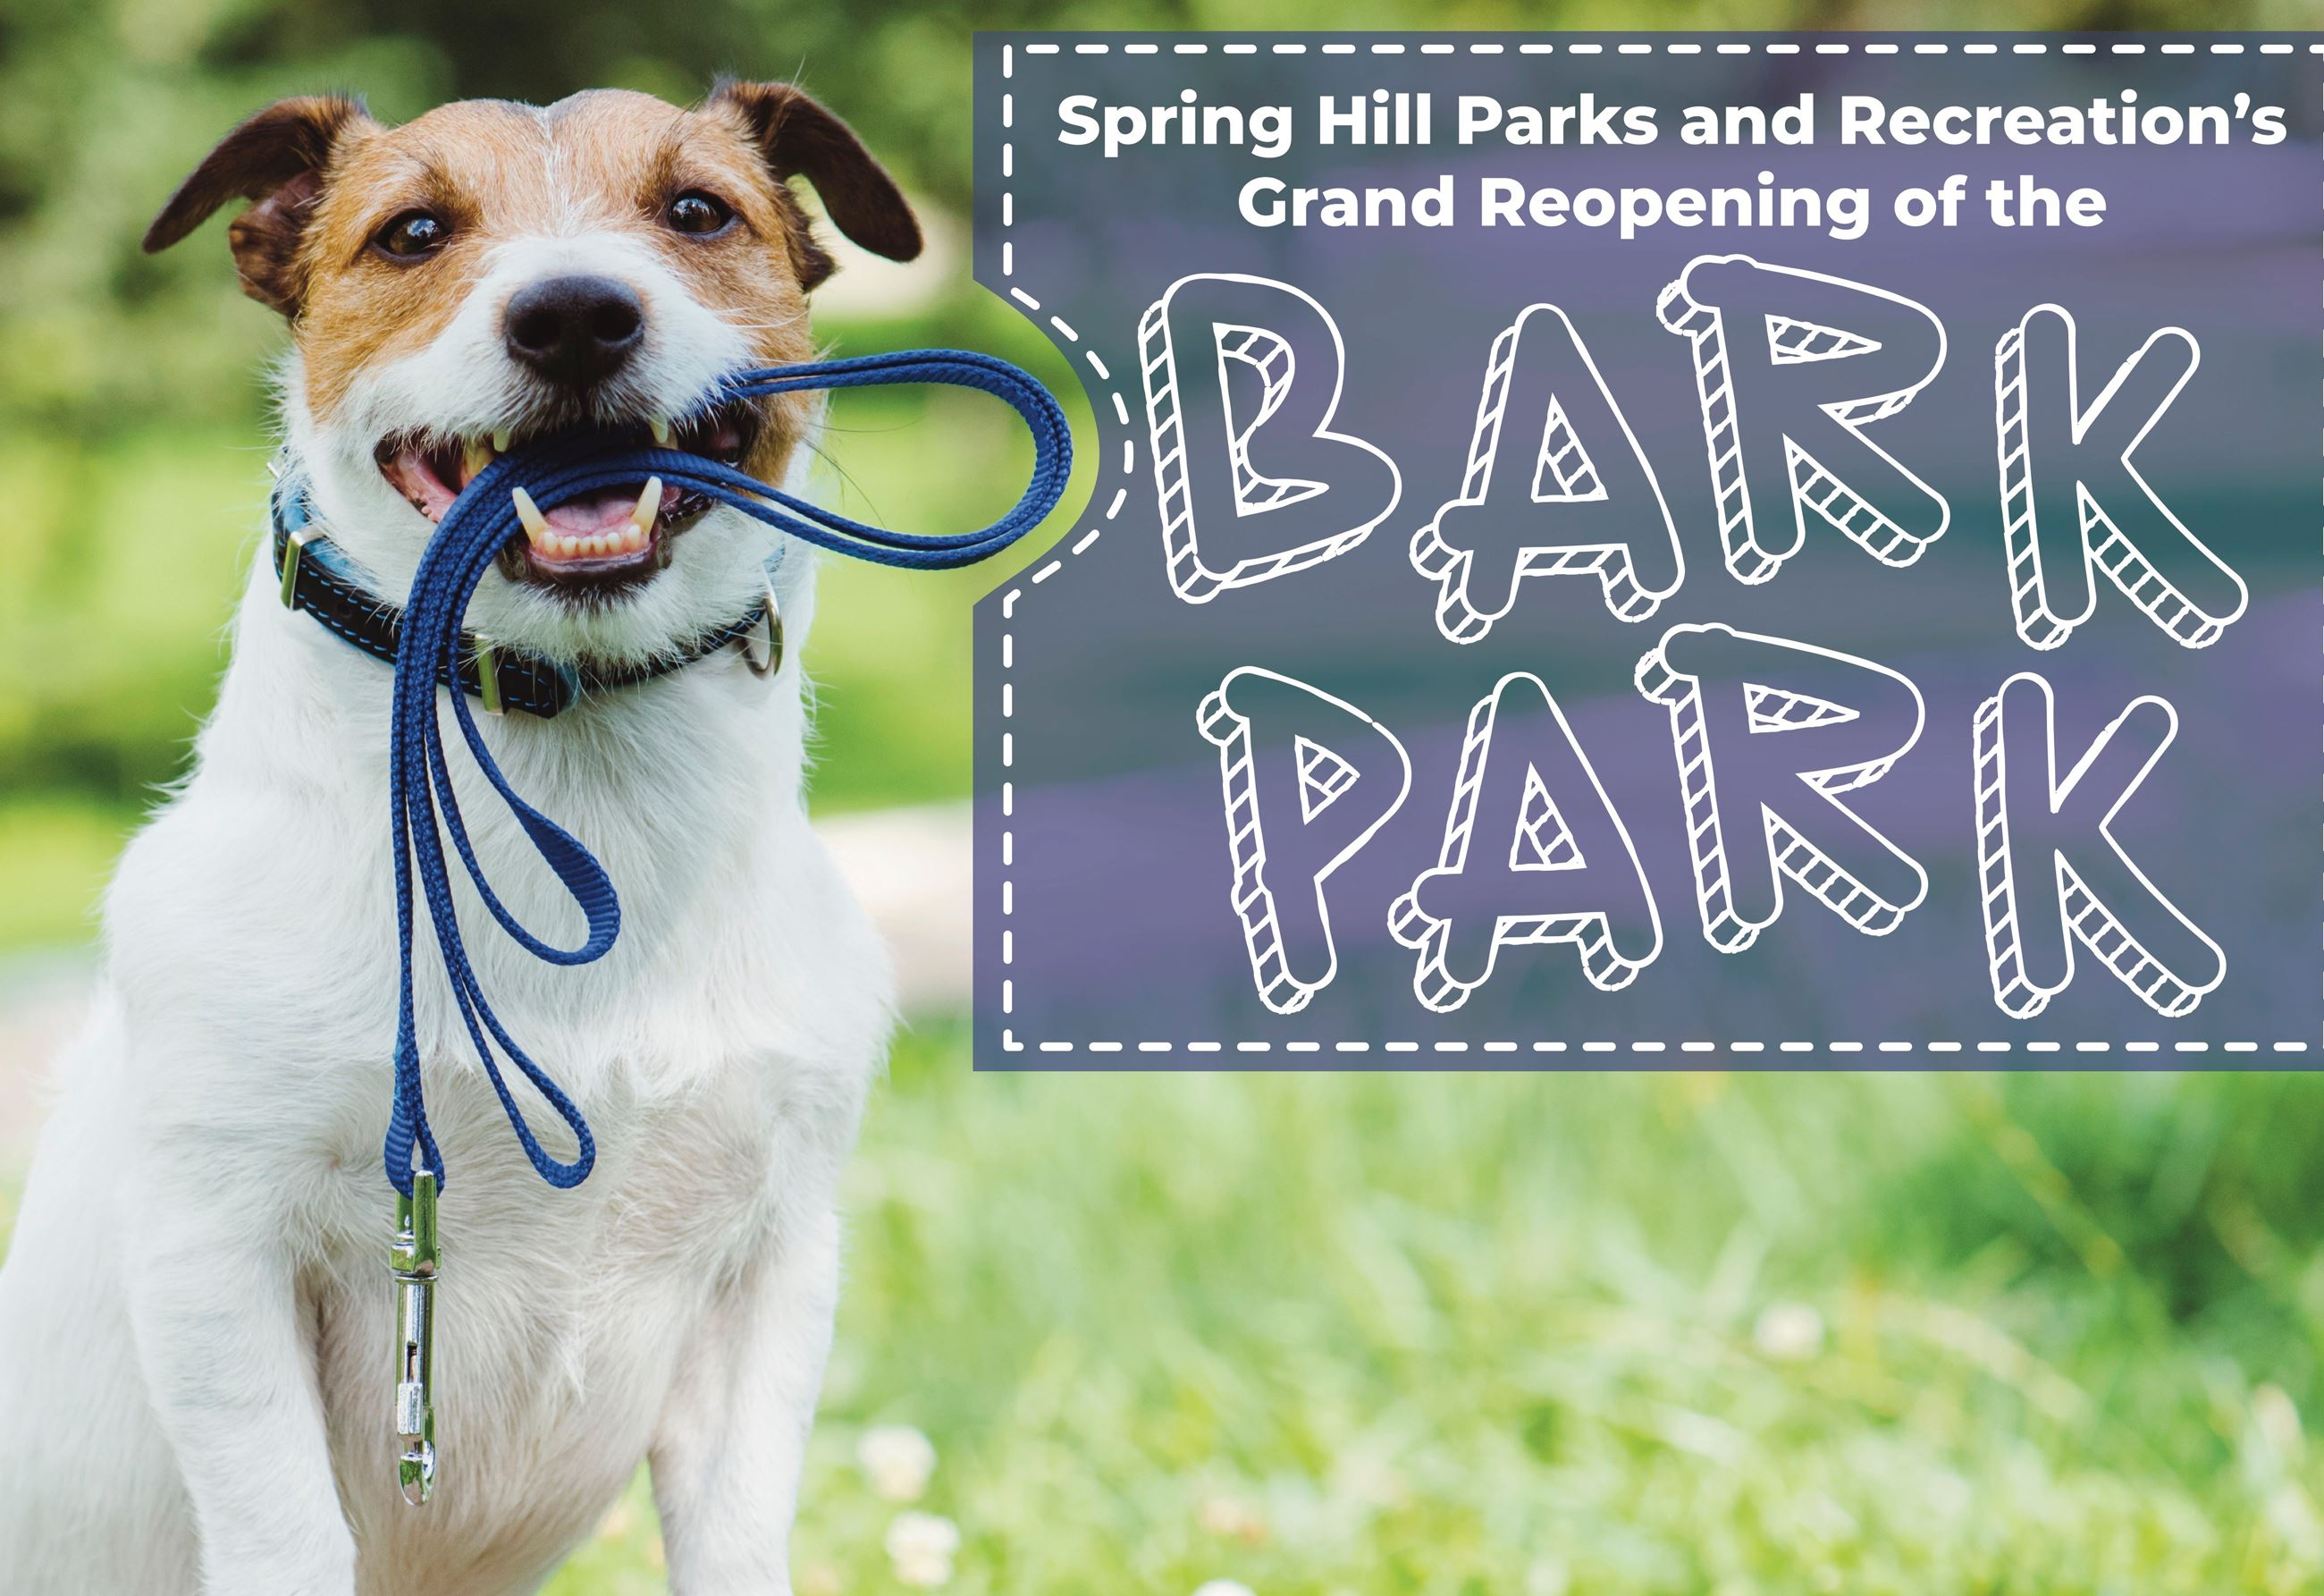 Expanded and renovated Bark Park set for June 1 grand opening